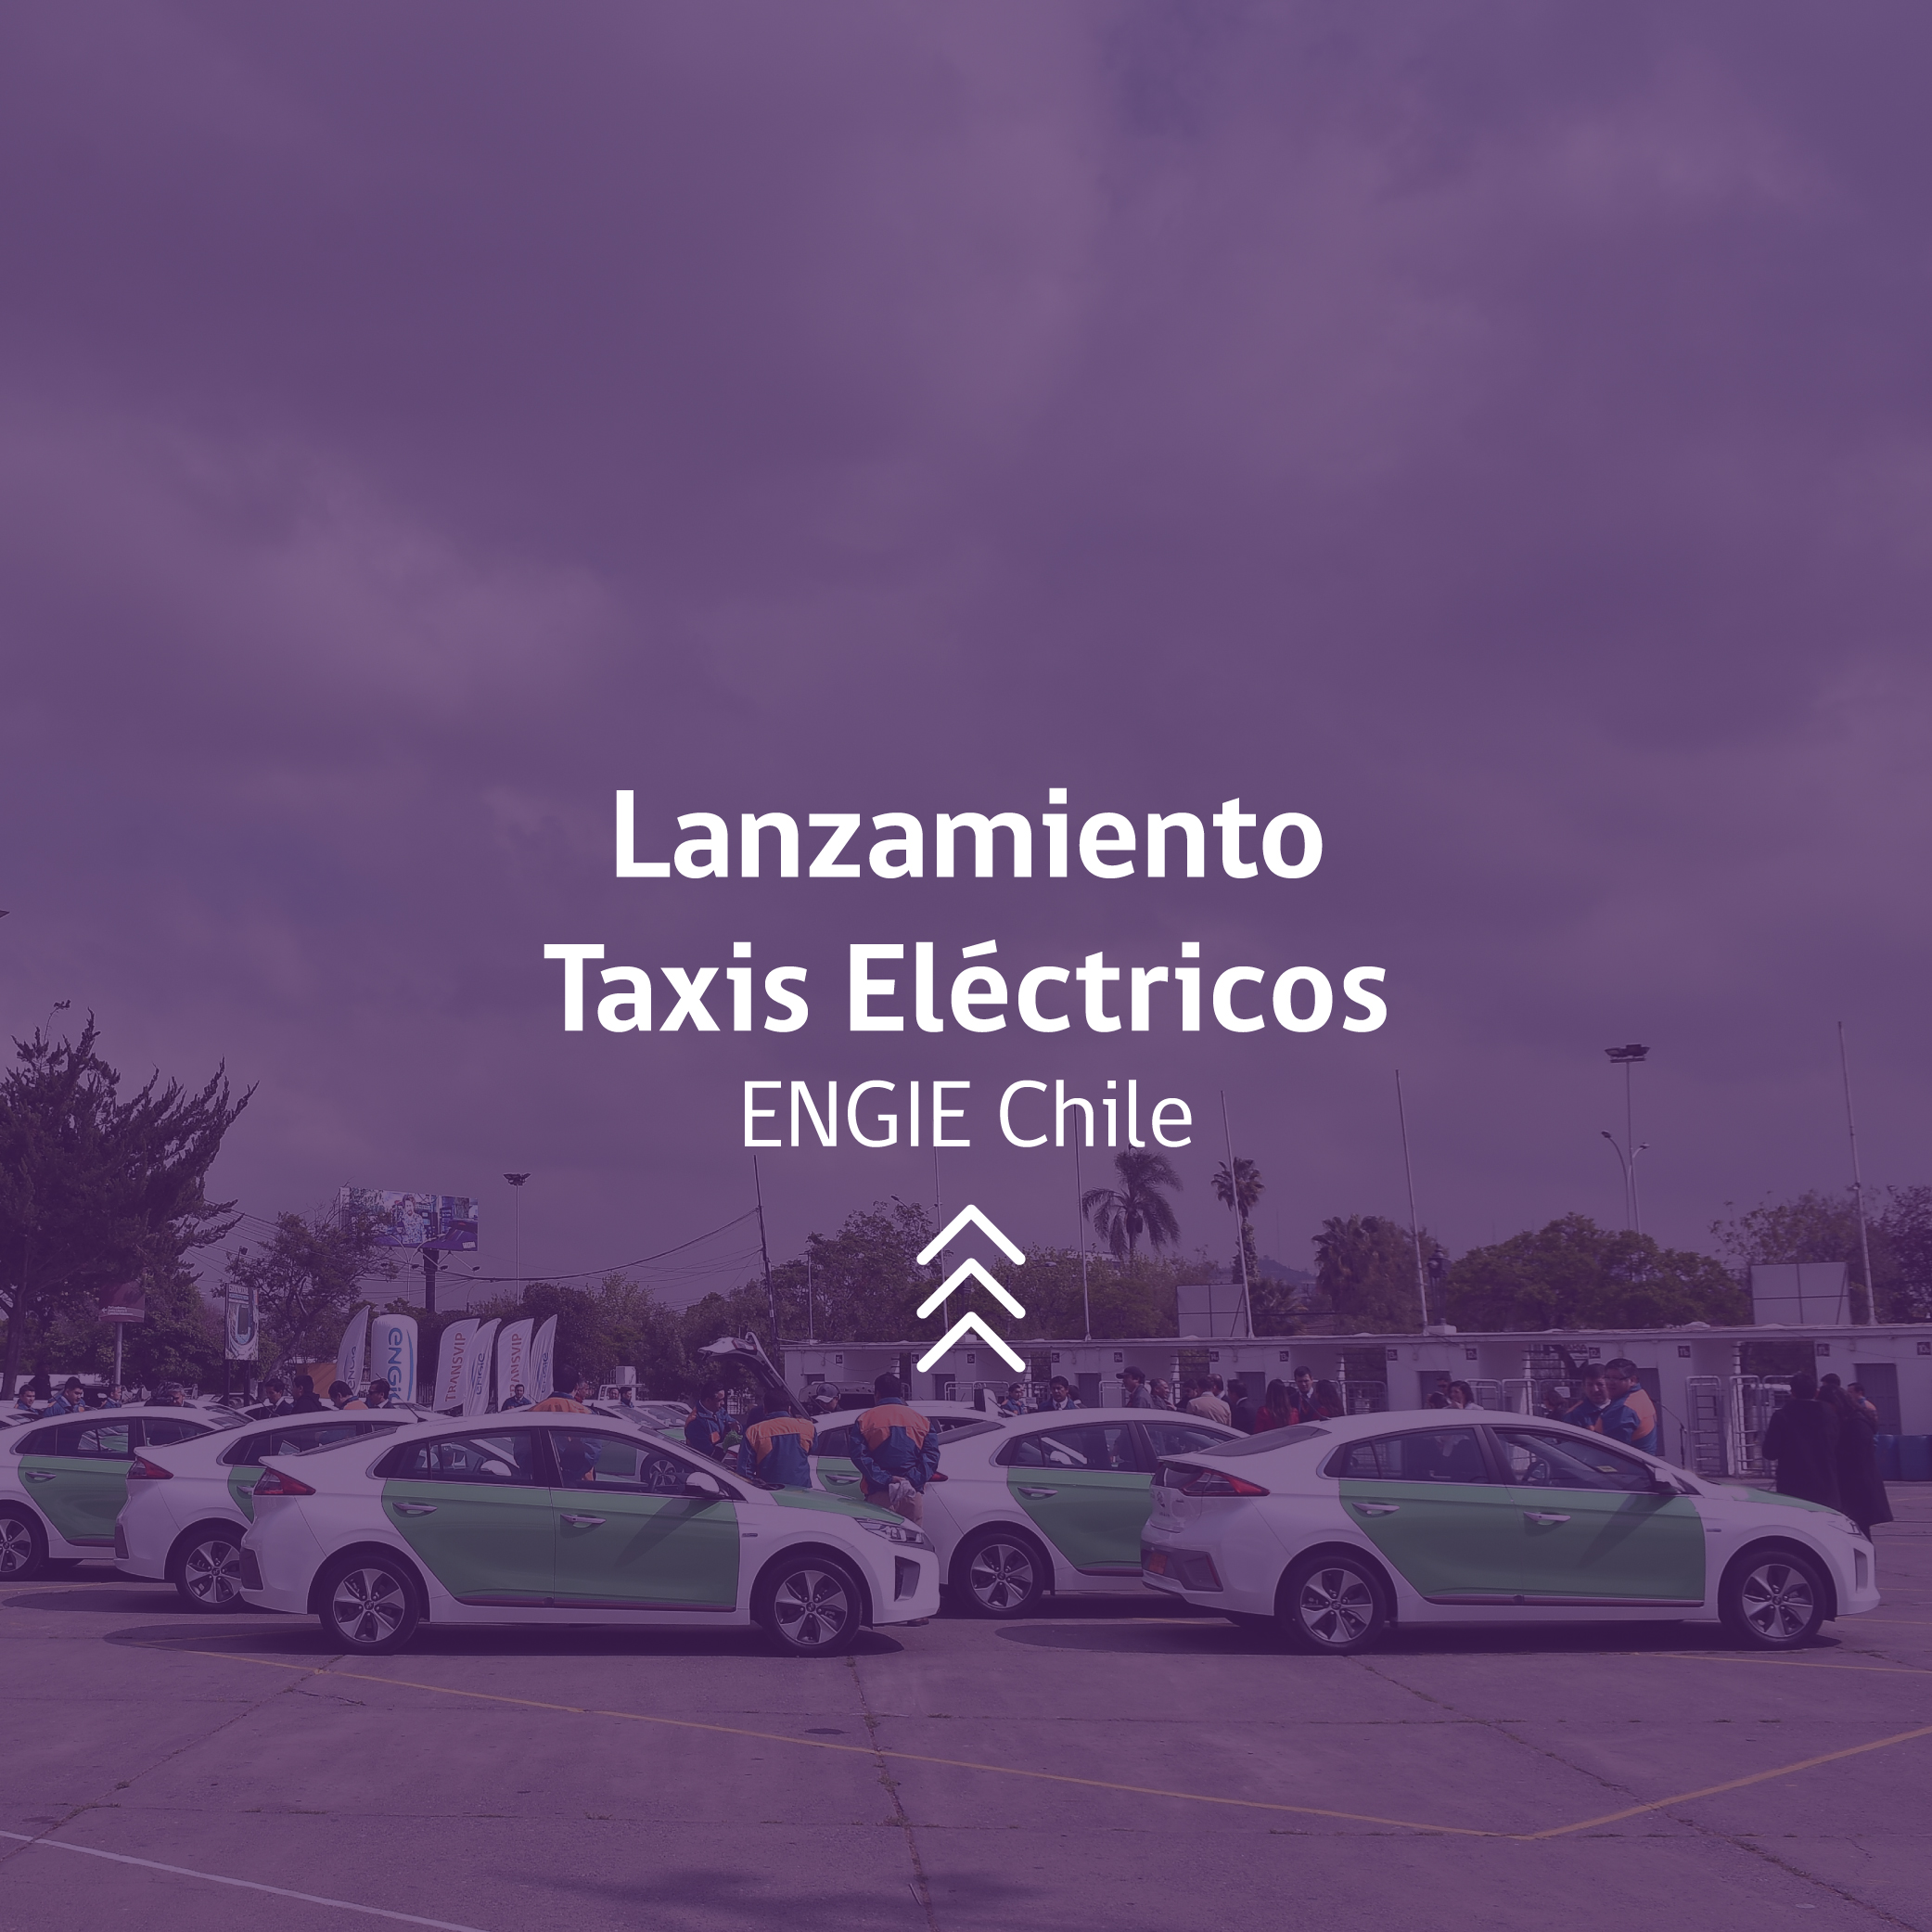 Taxis Electricos ENGIE